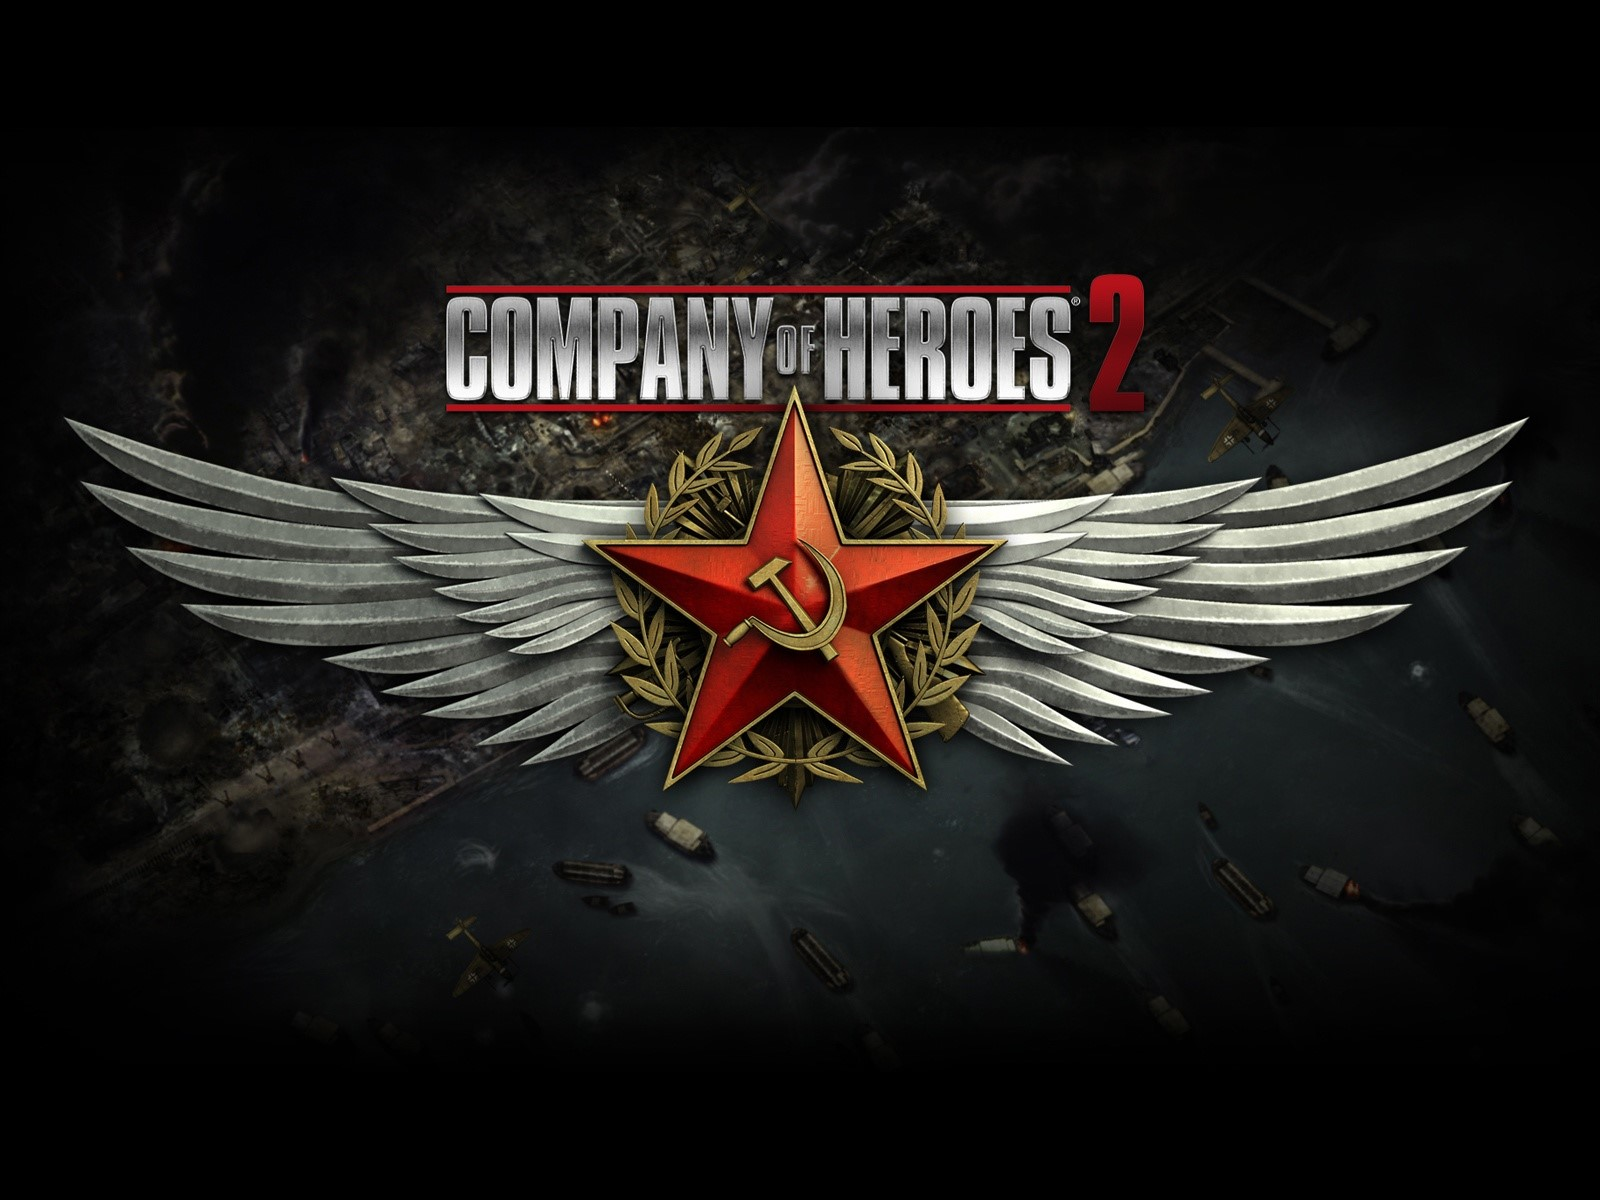 Wallpaper Company of heroes 2 Images